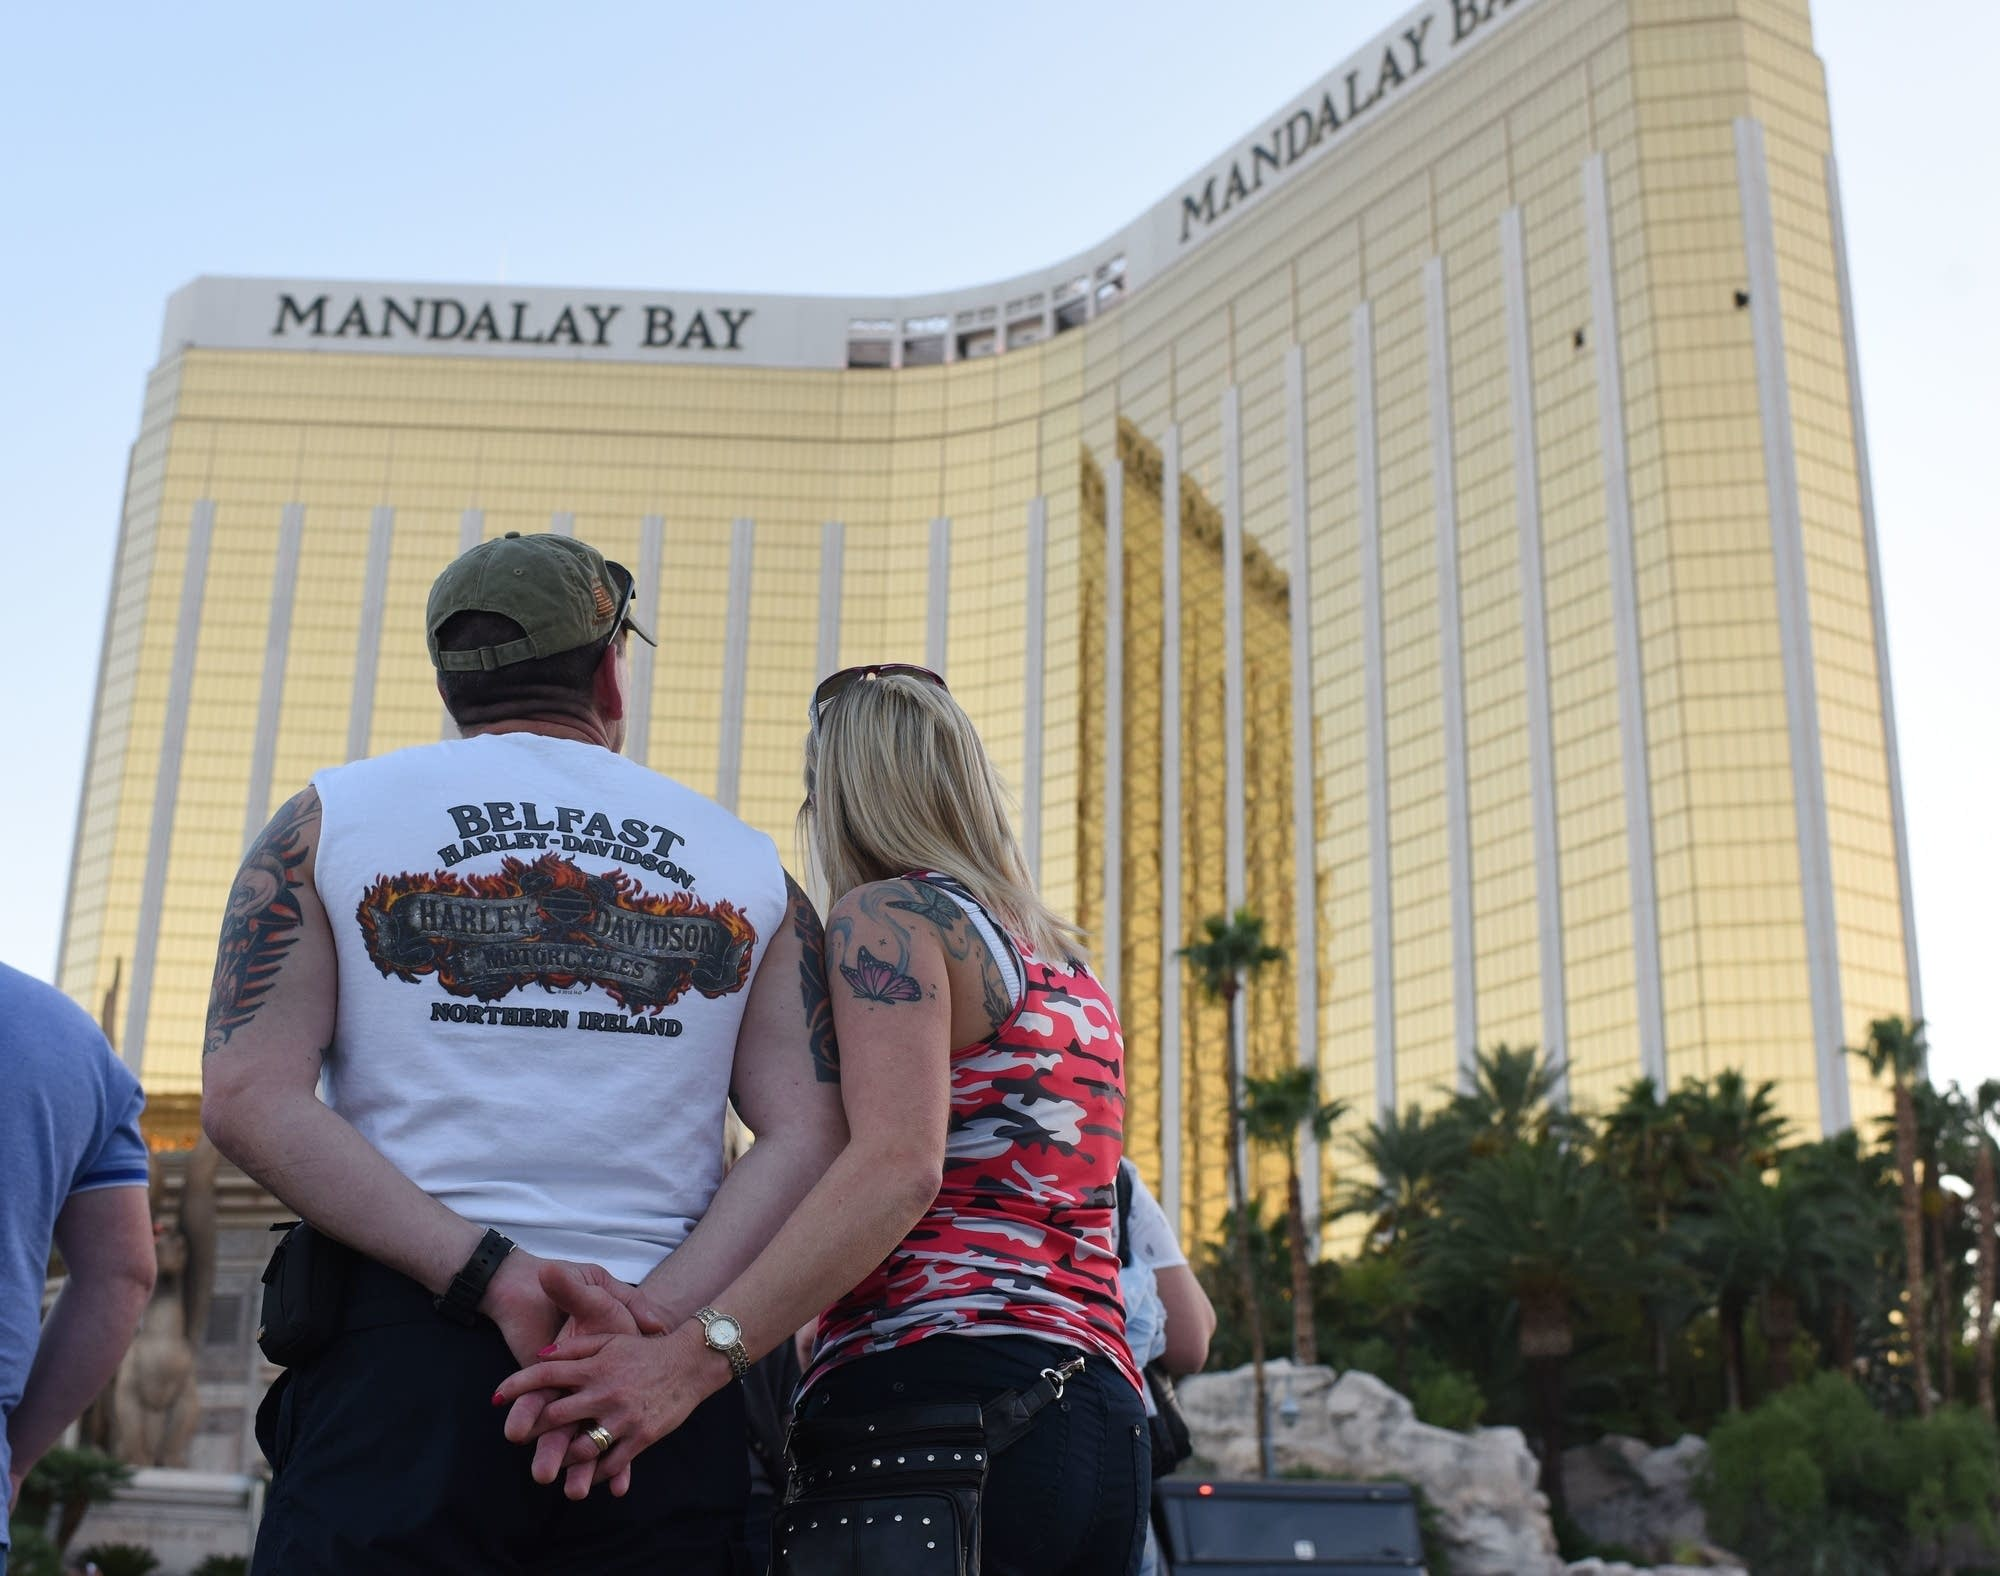 A couple looks up at the broken windows at the Mandalay Bay.